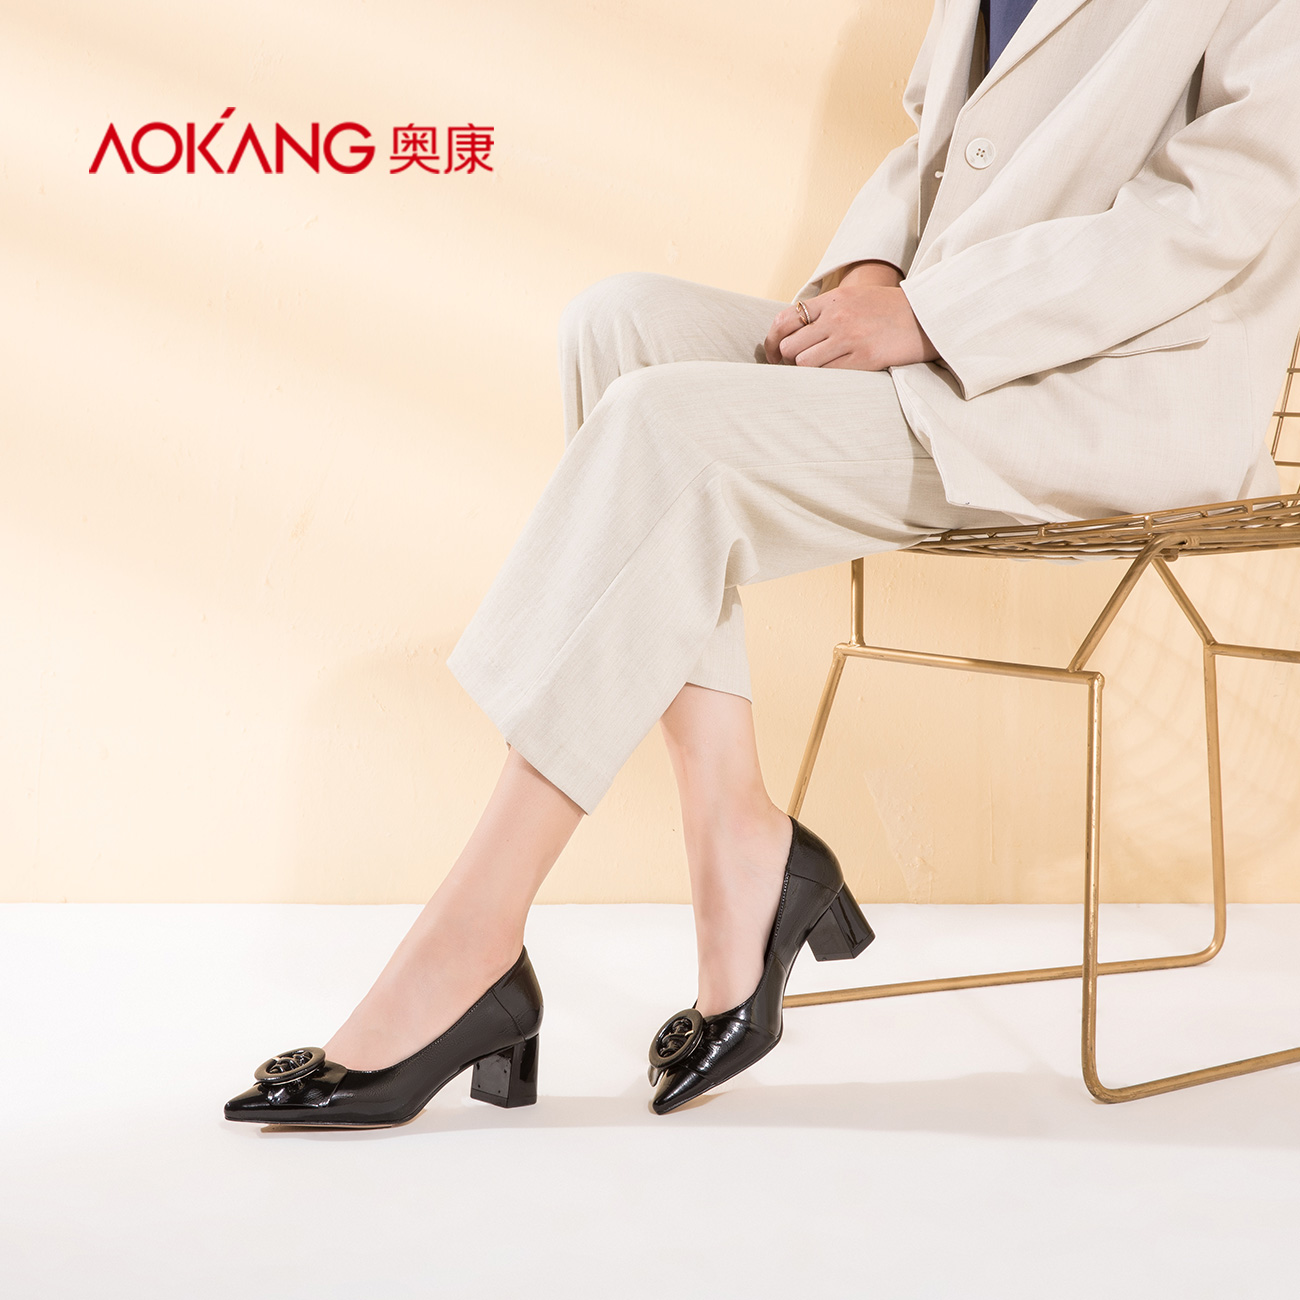 Aokang women's shoes pointed, shallow, high-heeled, simple fashion, commuting, heavy-heeled women's single shoes in autumn